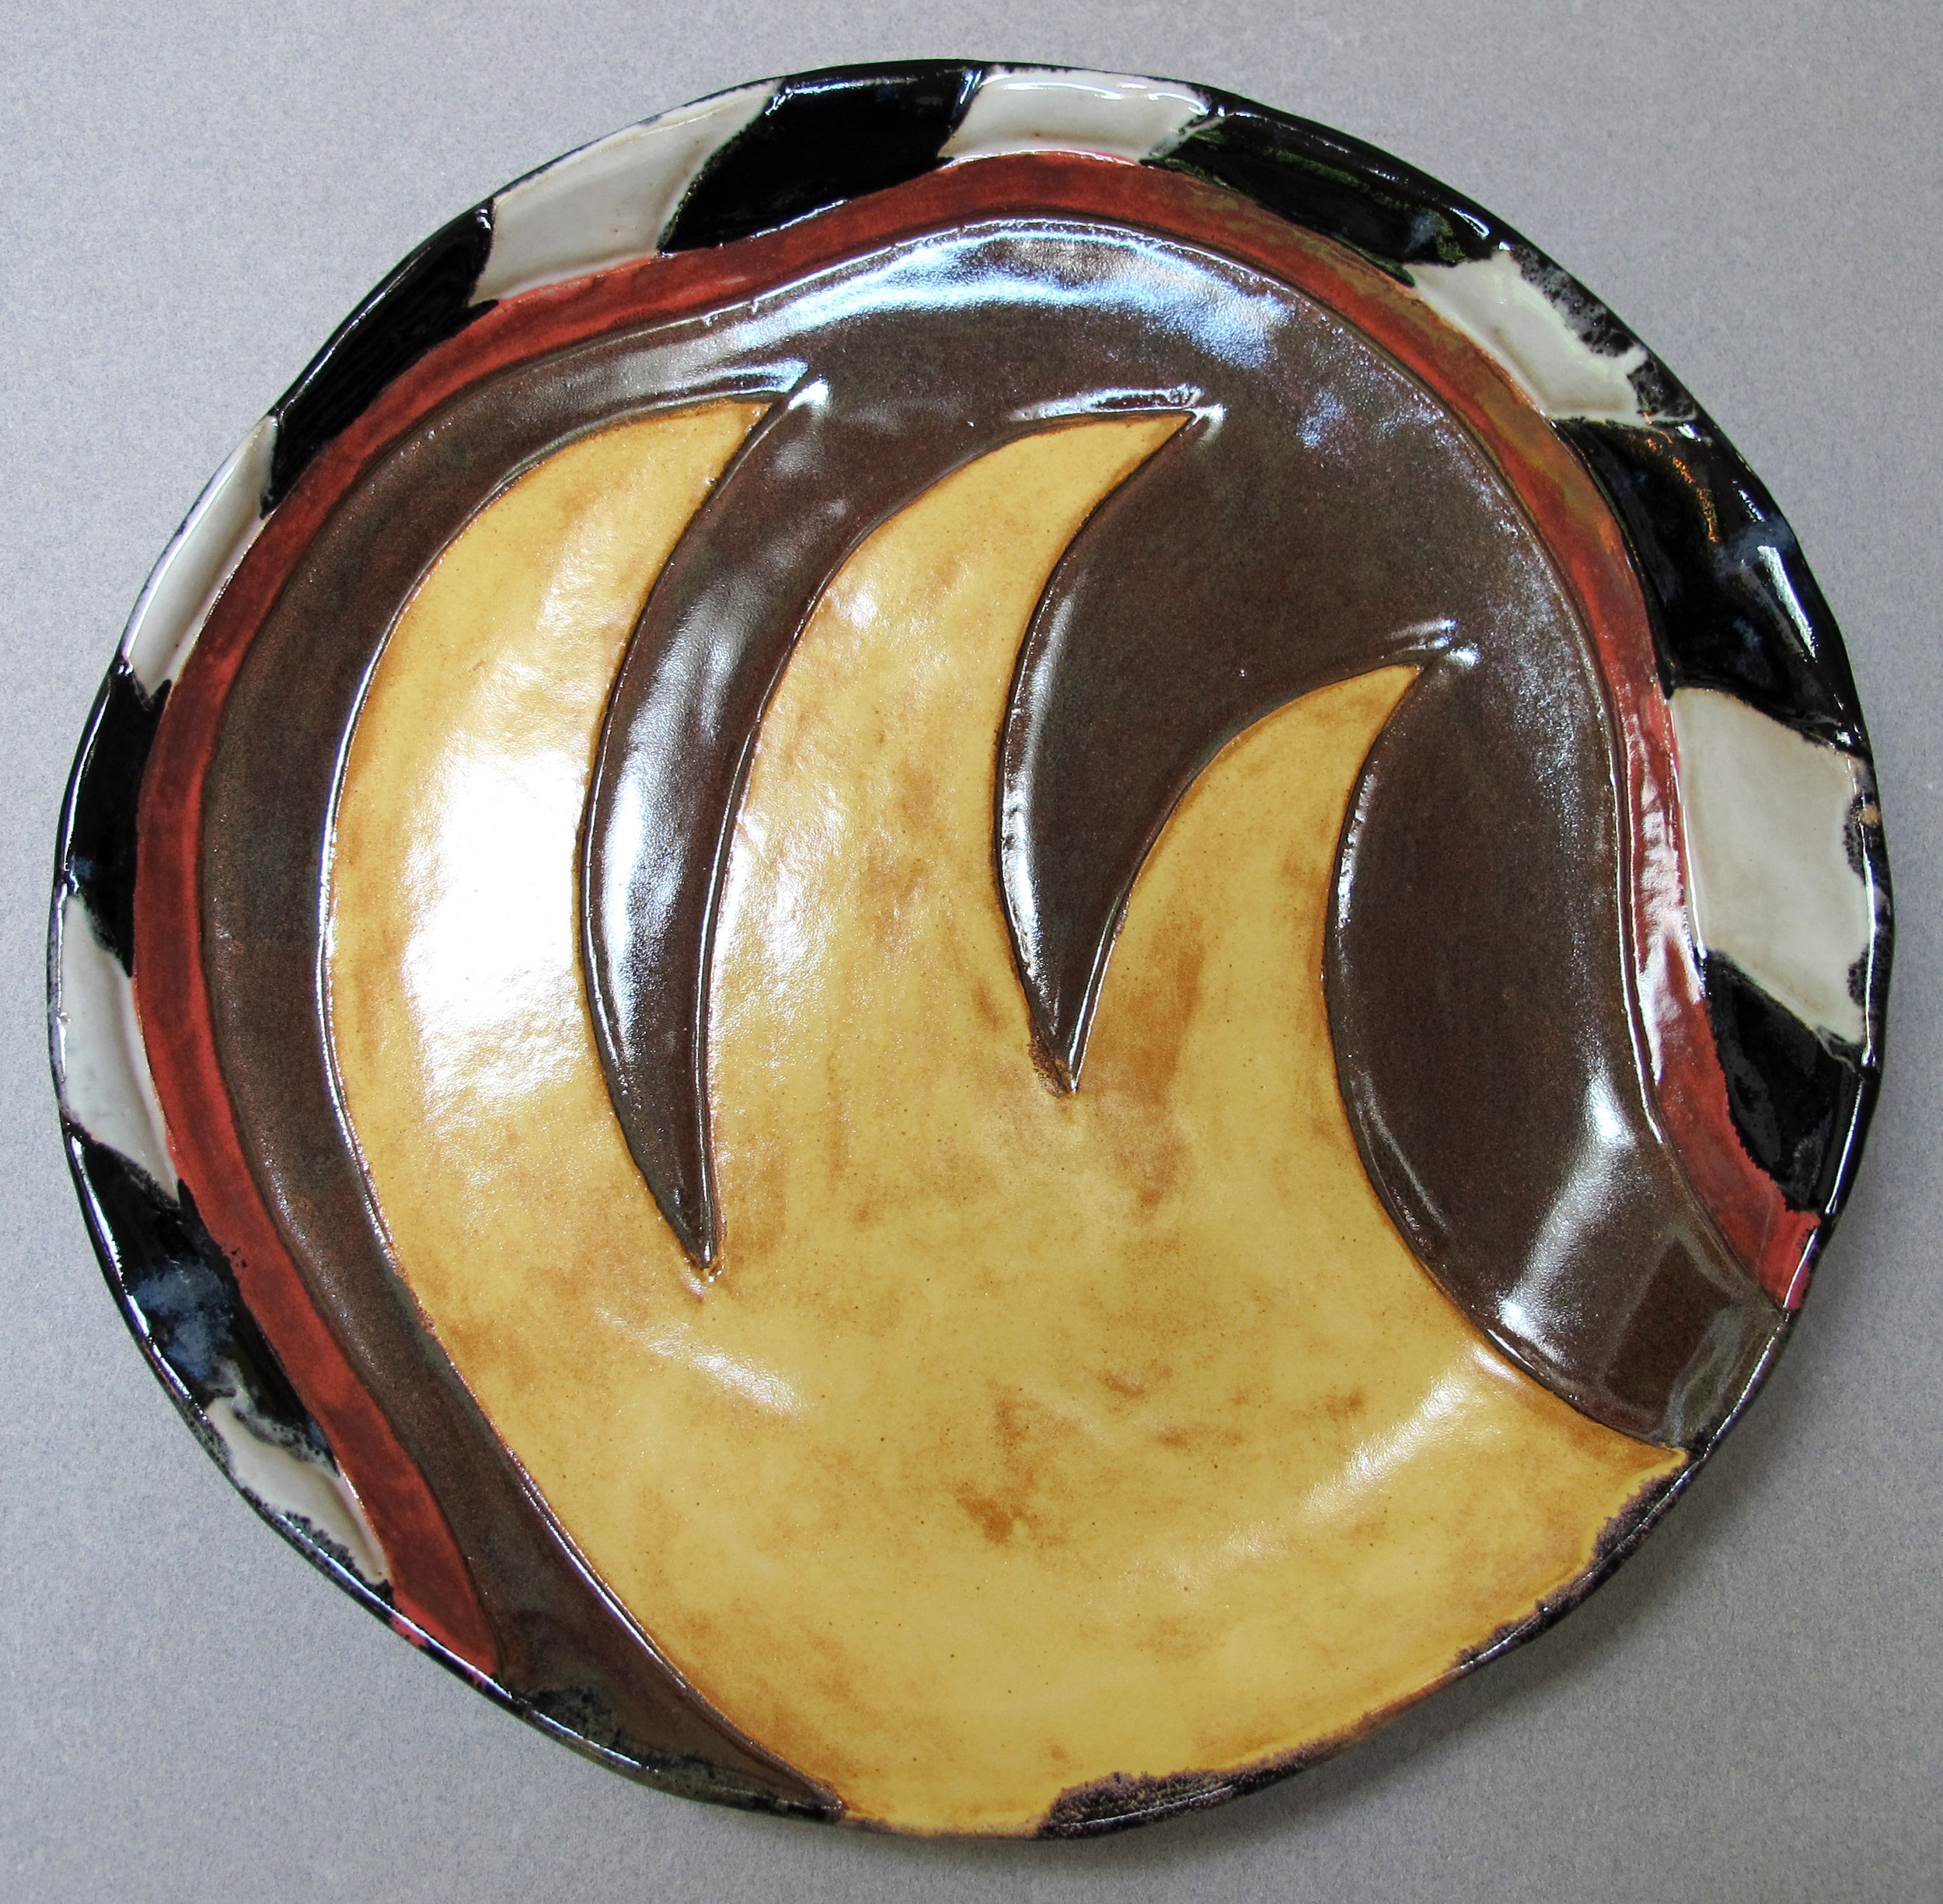 YELLOW WAVES ON BROWN PLATE